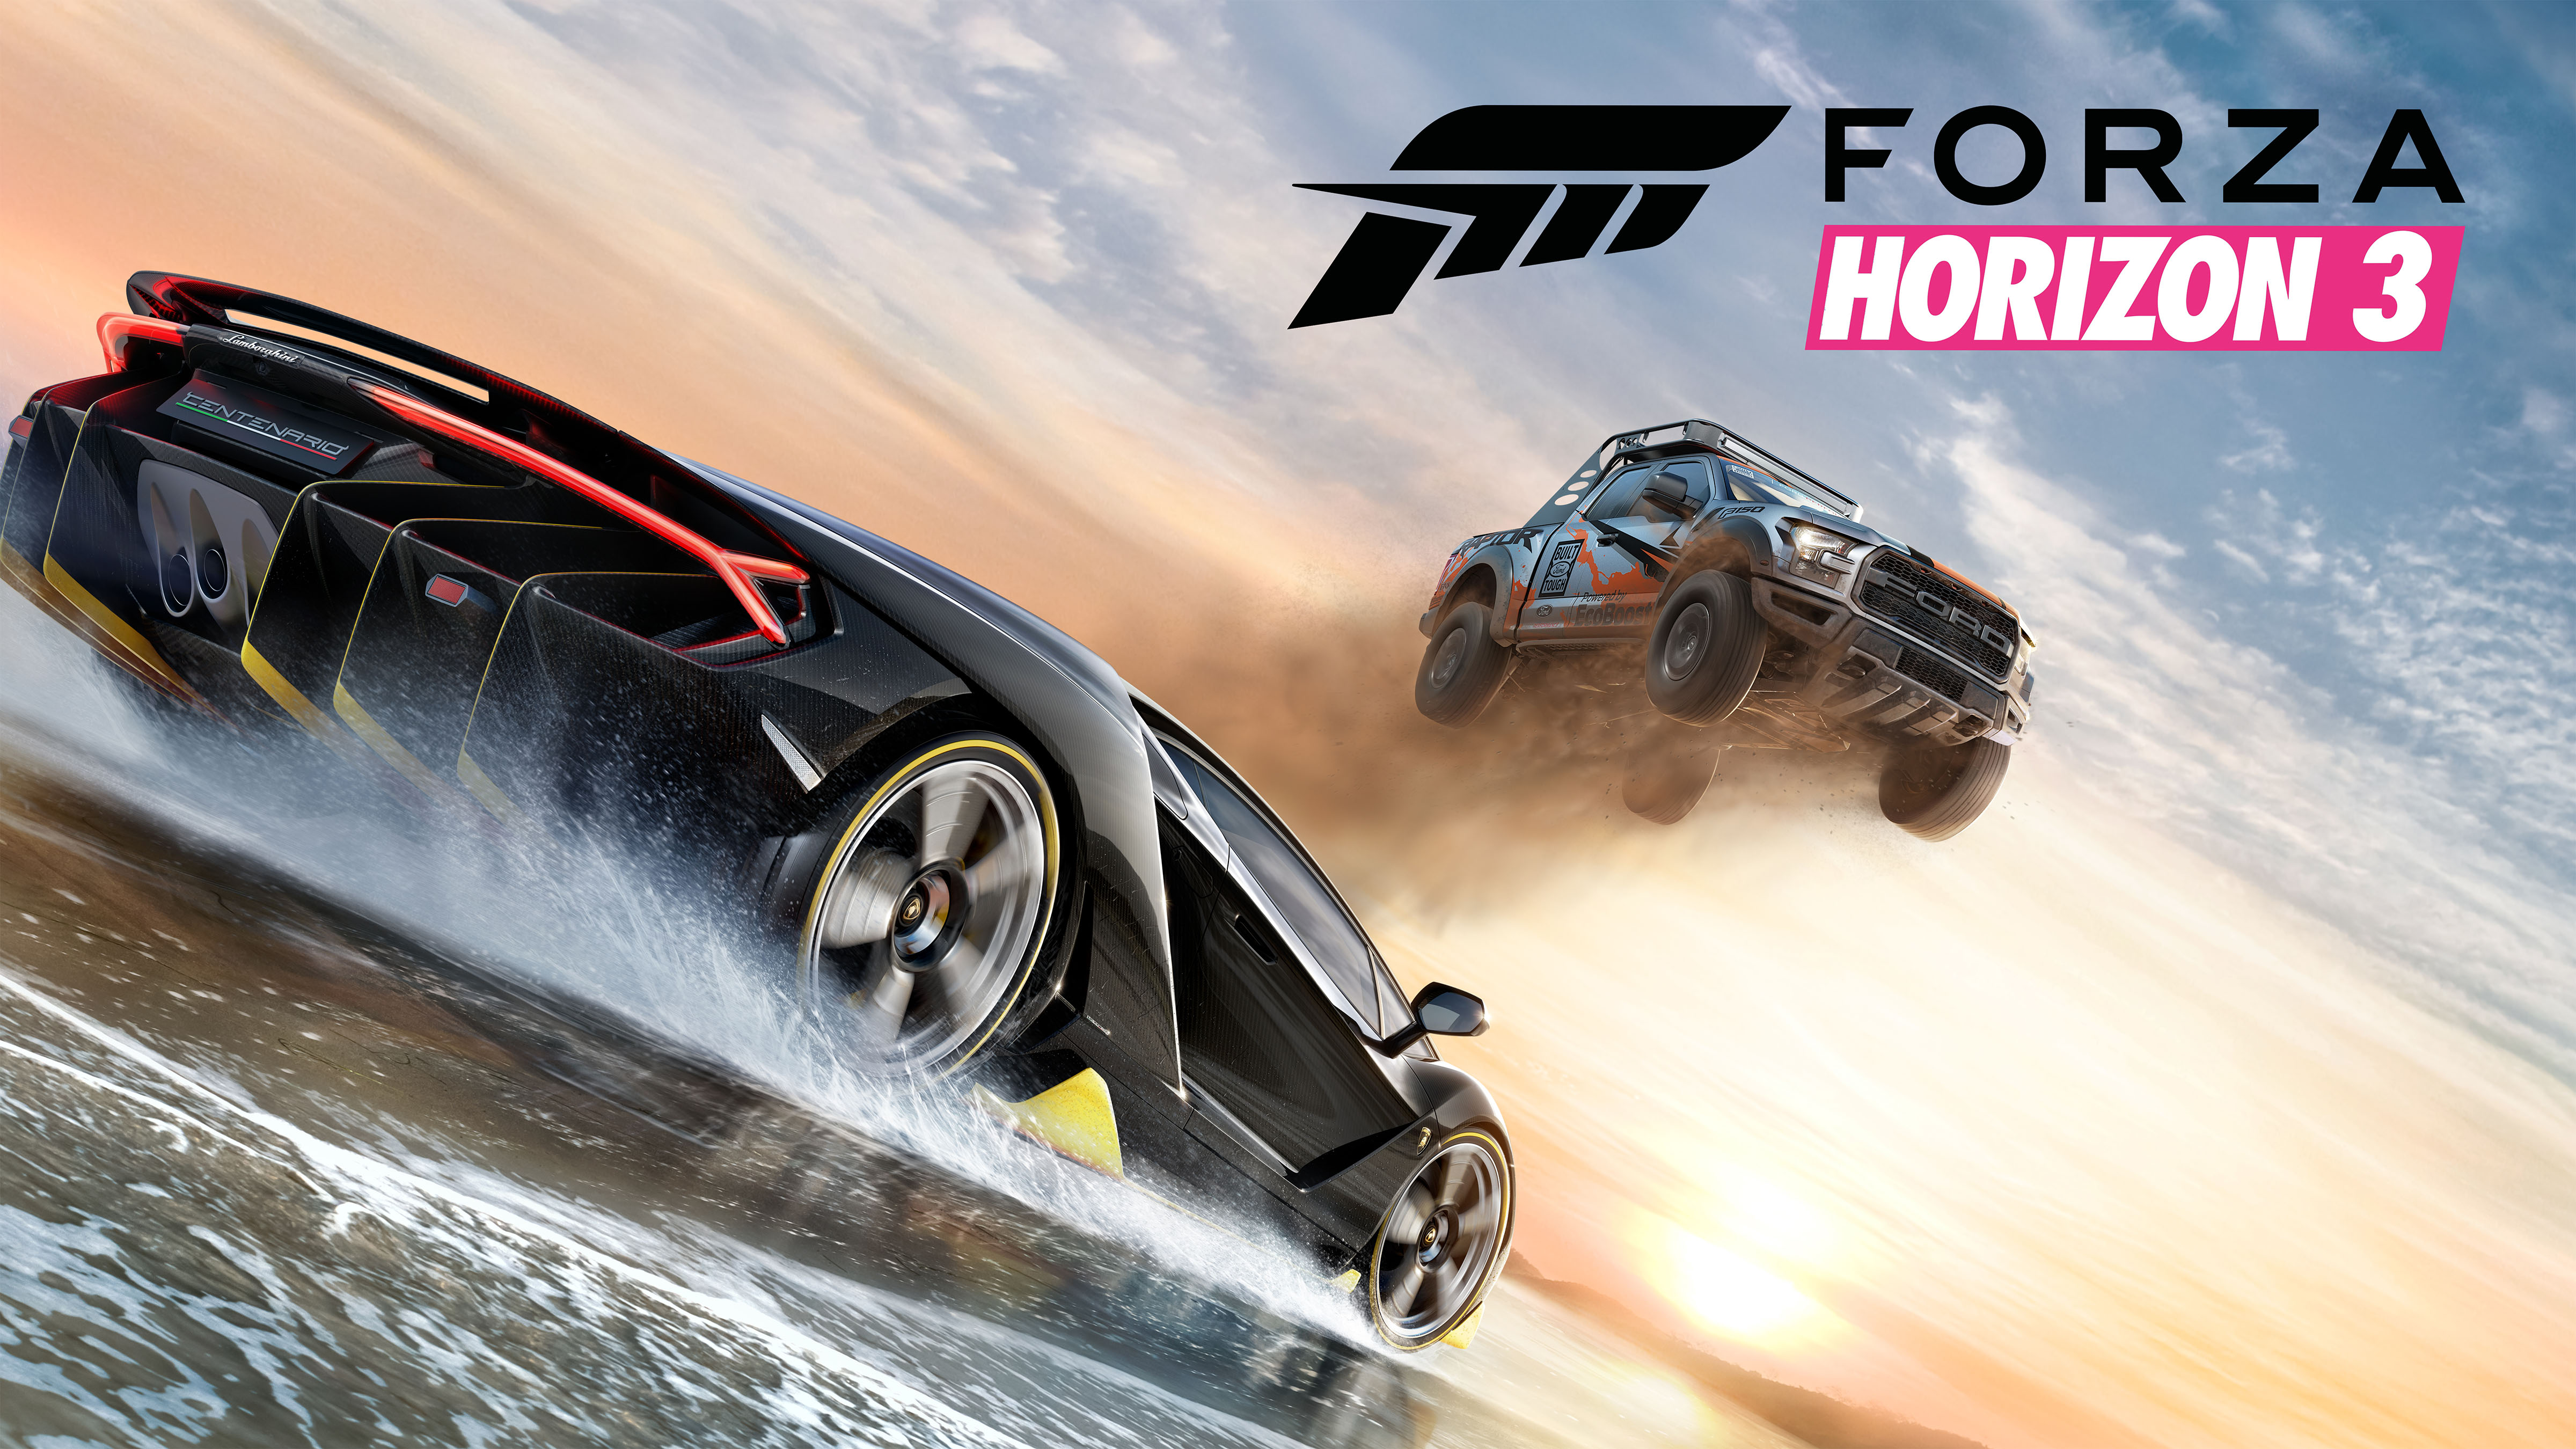 Forza Horizon 3: The Racing Game You've Always Wanted